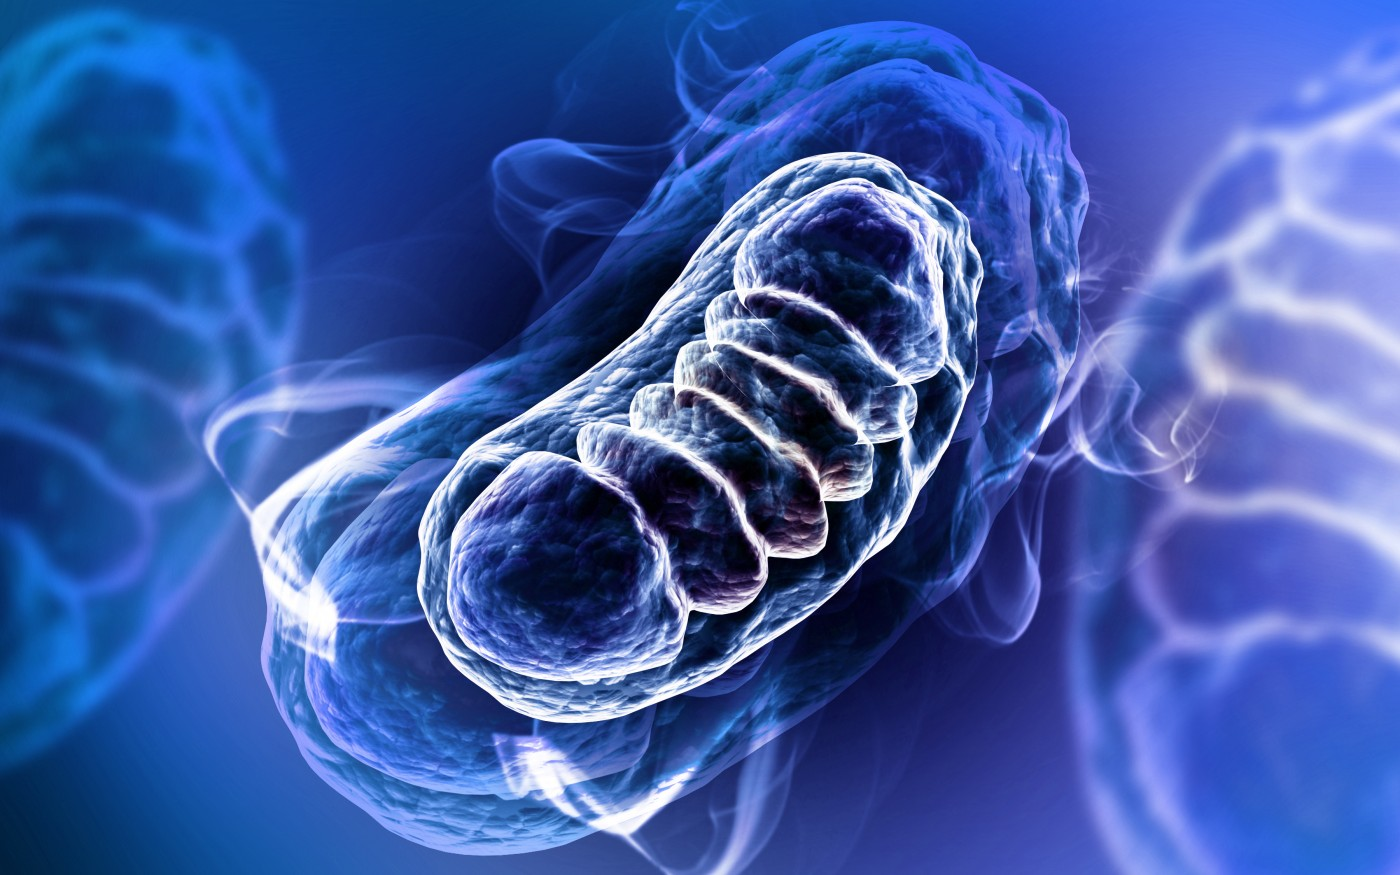 Melanoma Pigmentation Linked to Mitochondrial ROS Levels